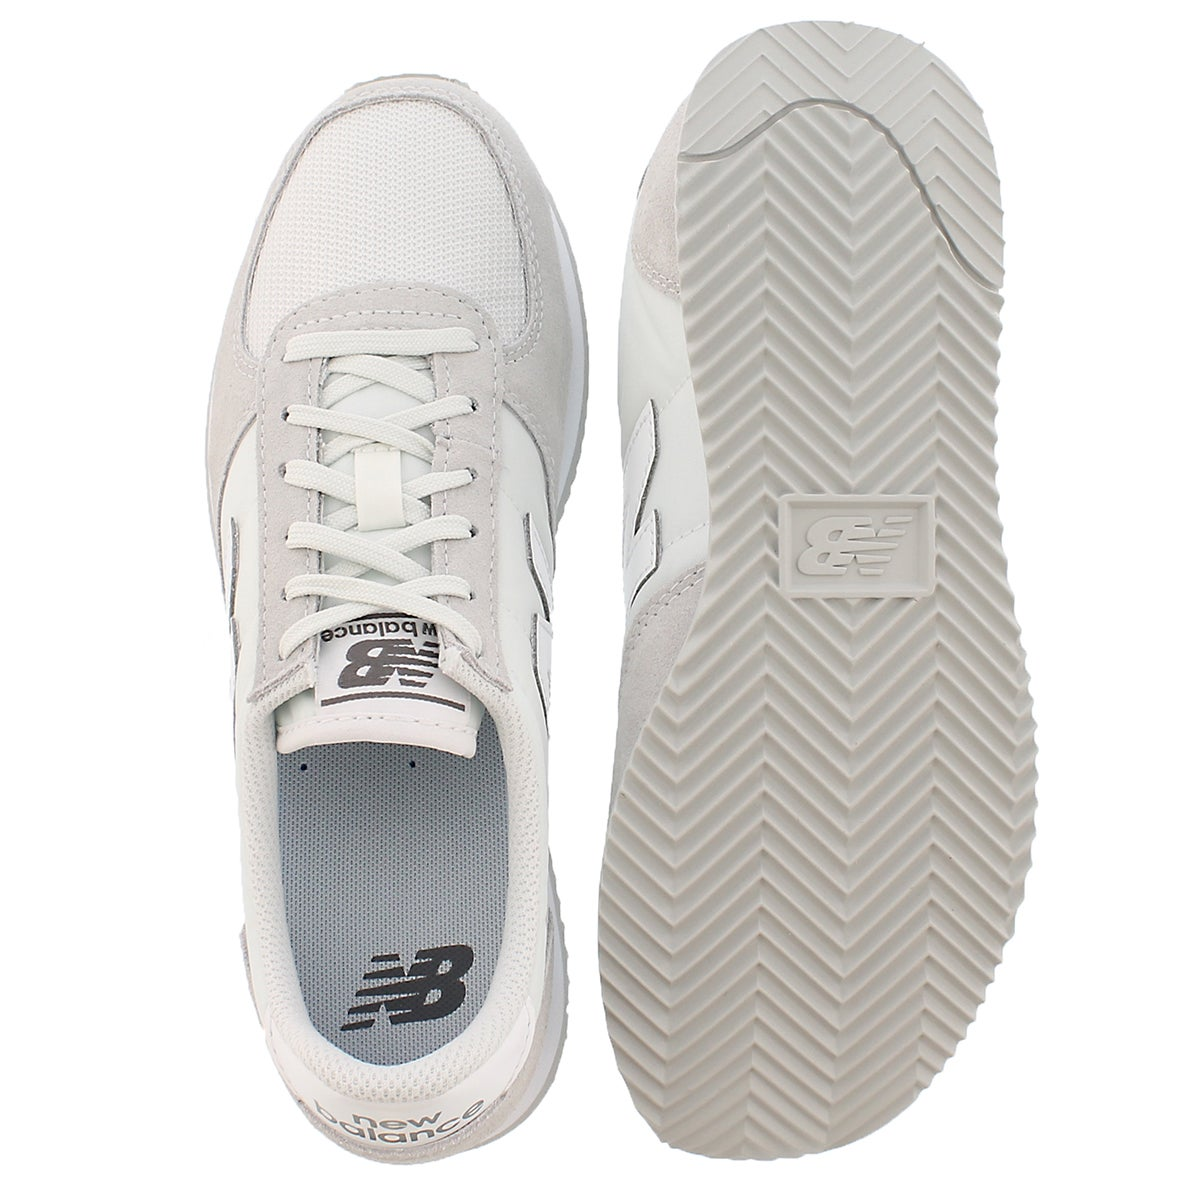 Lds 220 cloud/white lace up sneaker